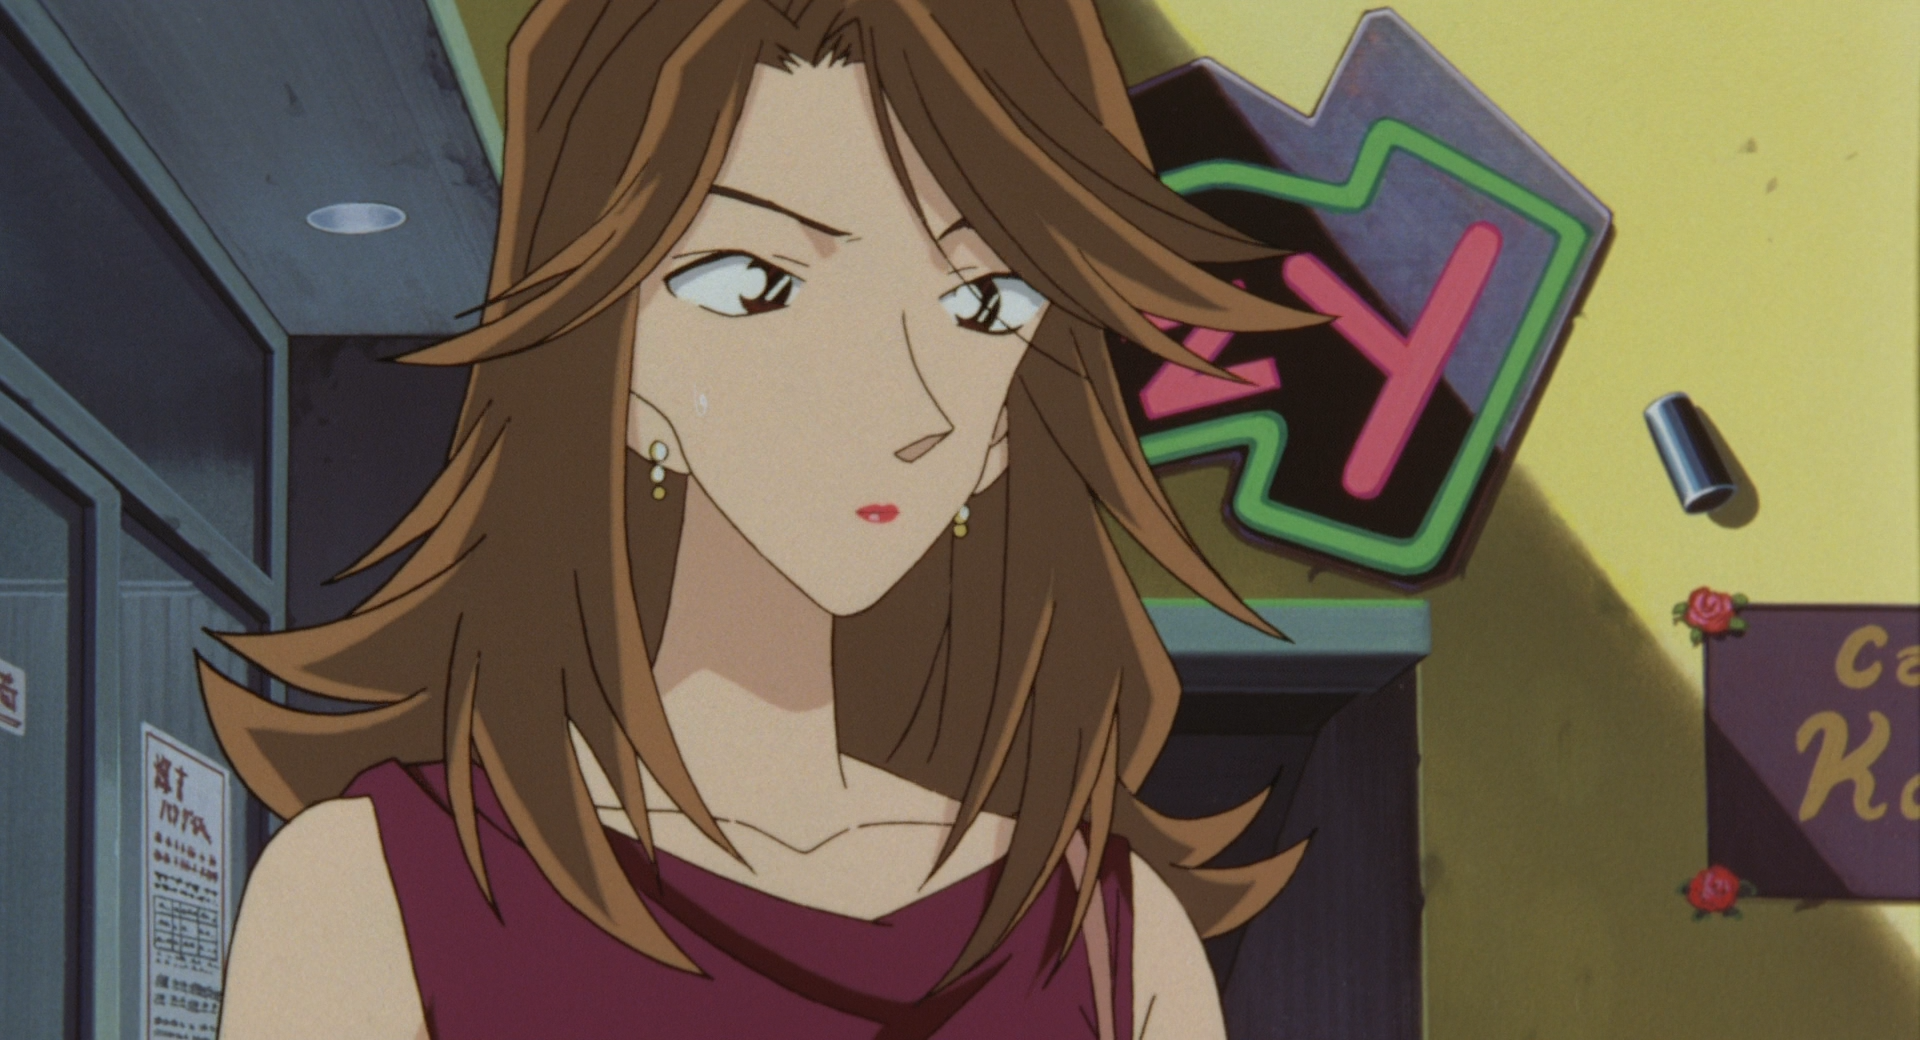 Anime44 detective conan movie 4 : Housewives of beverly